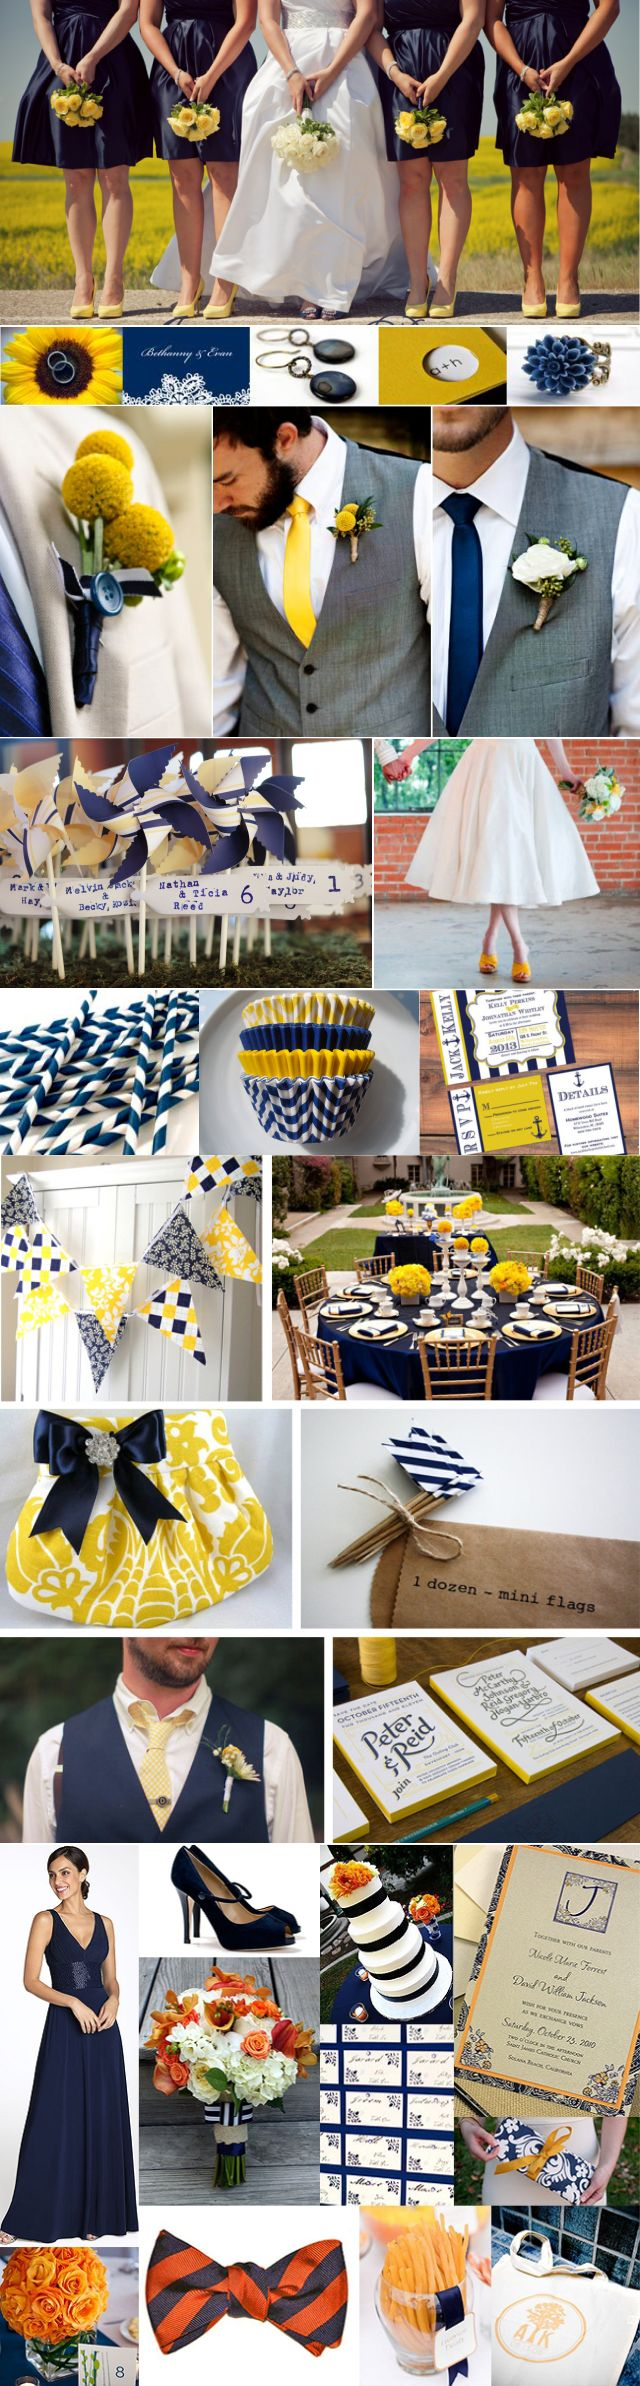 Wedding decorations themes ideas october 2018  best jenelle and kent wedding images on Pinterest